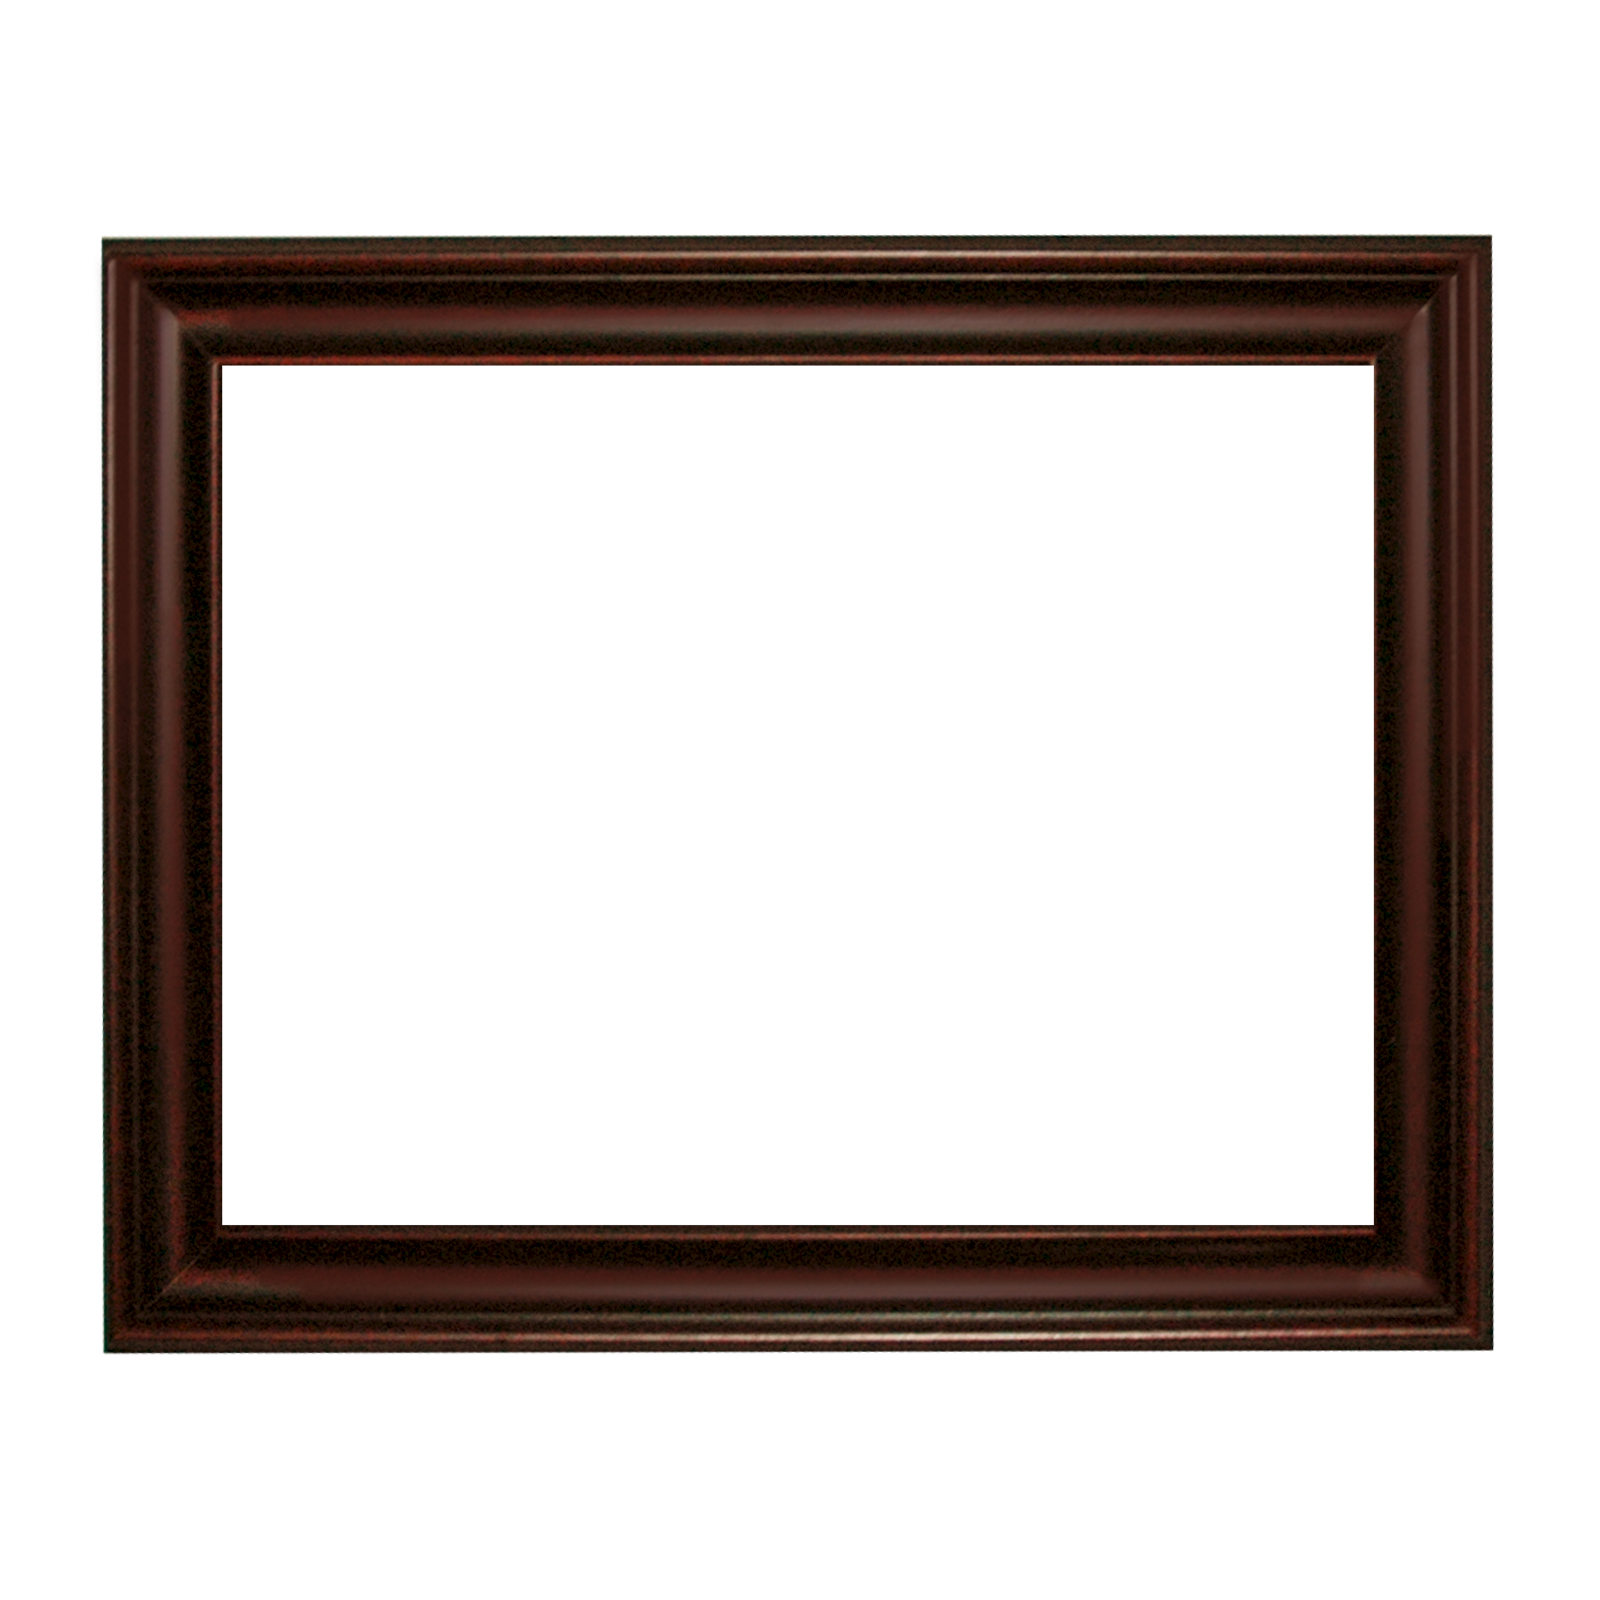 1600x1600 Wood Frame Nevada Cherry Tree Various Variations Empty Frame